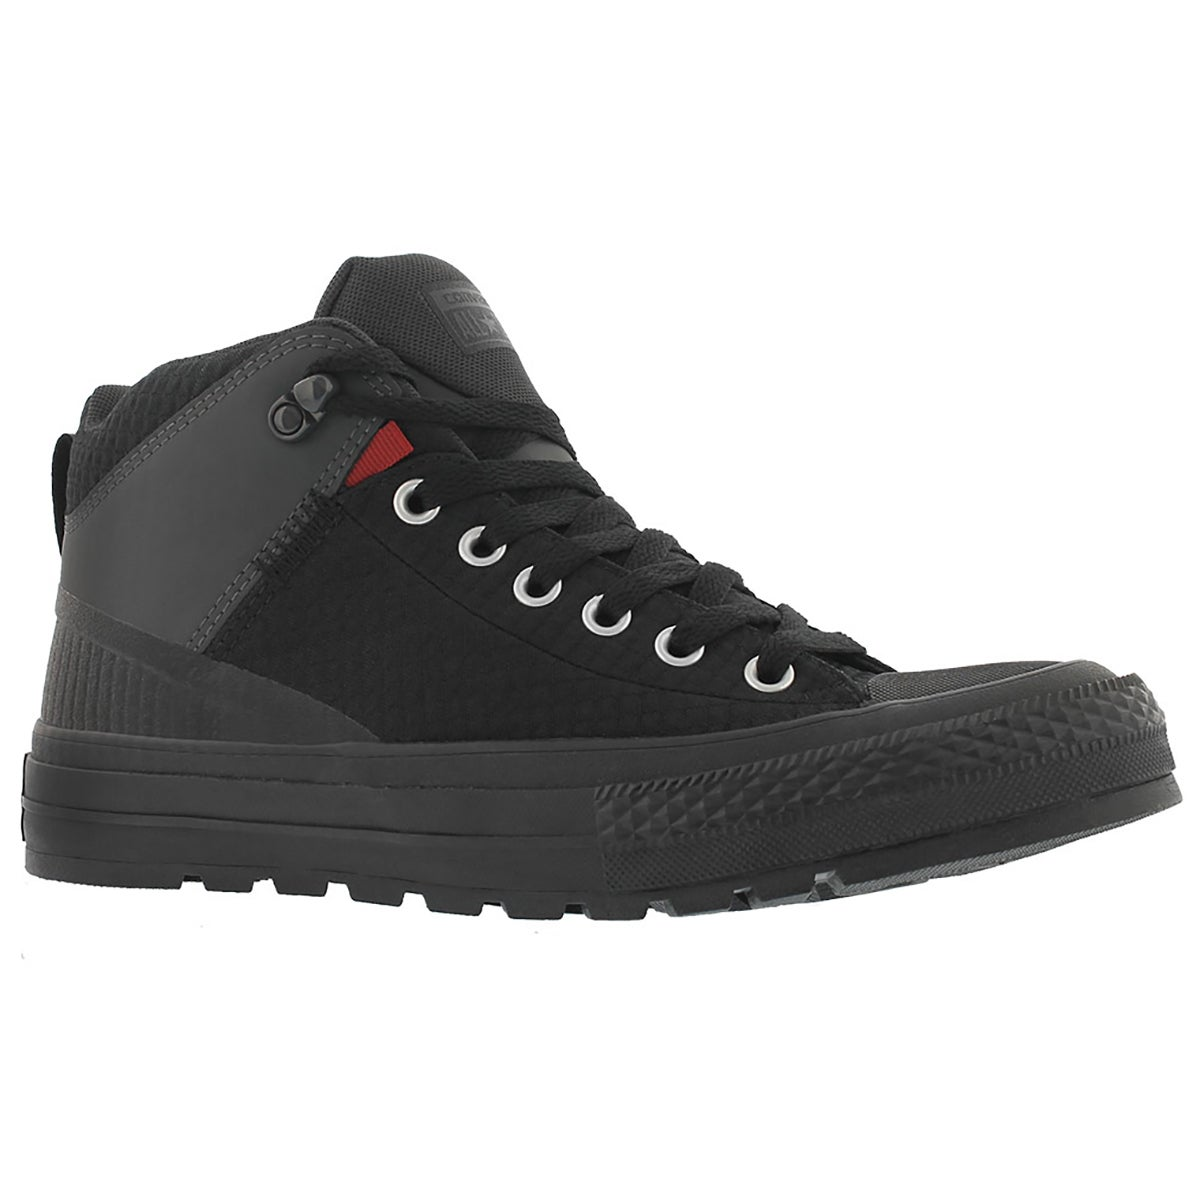 Men's CT ALL STAR STREET black/red boots